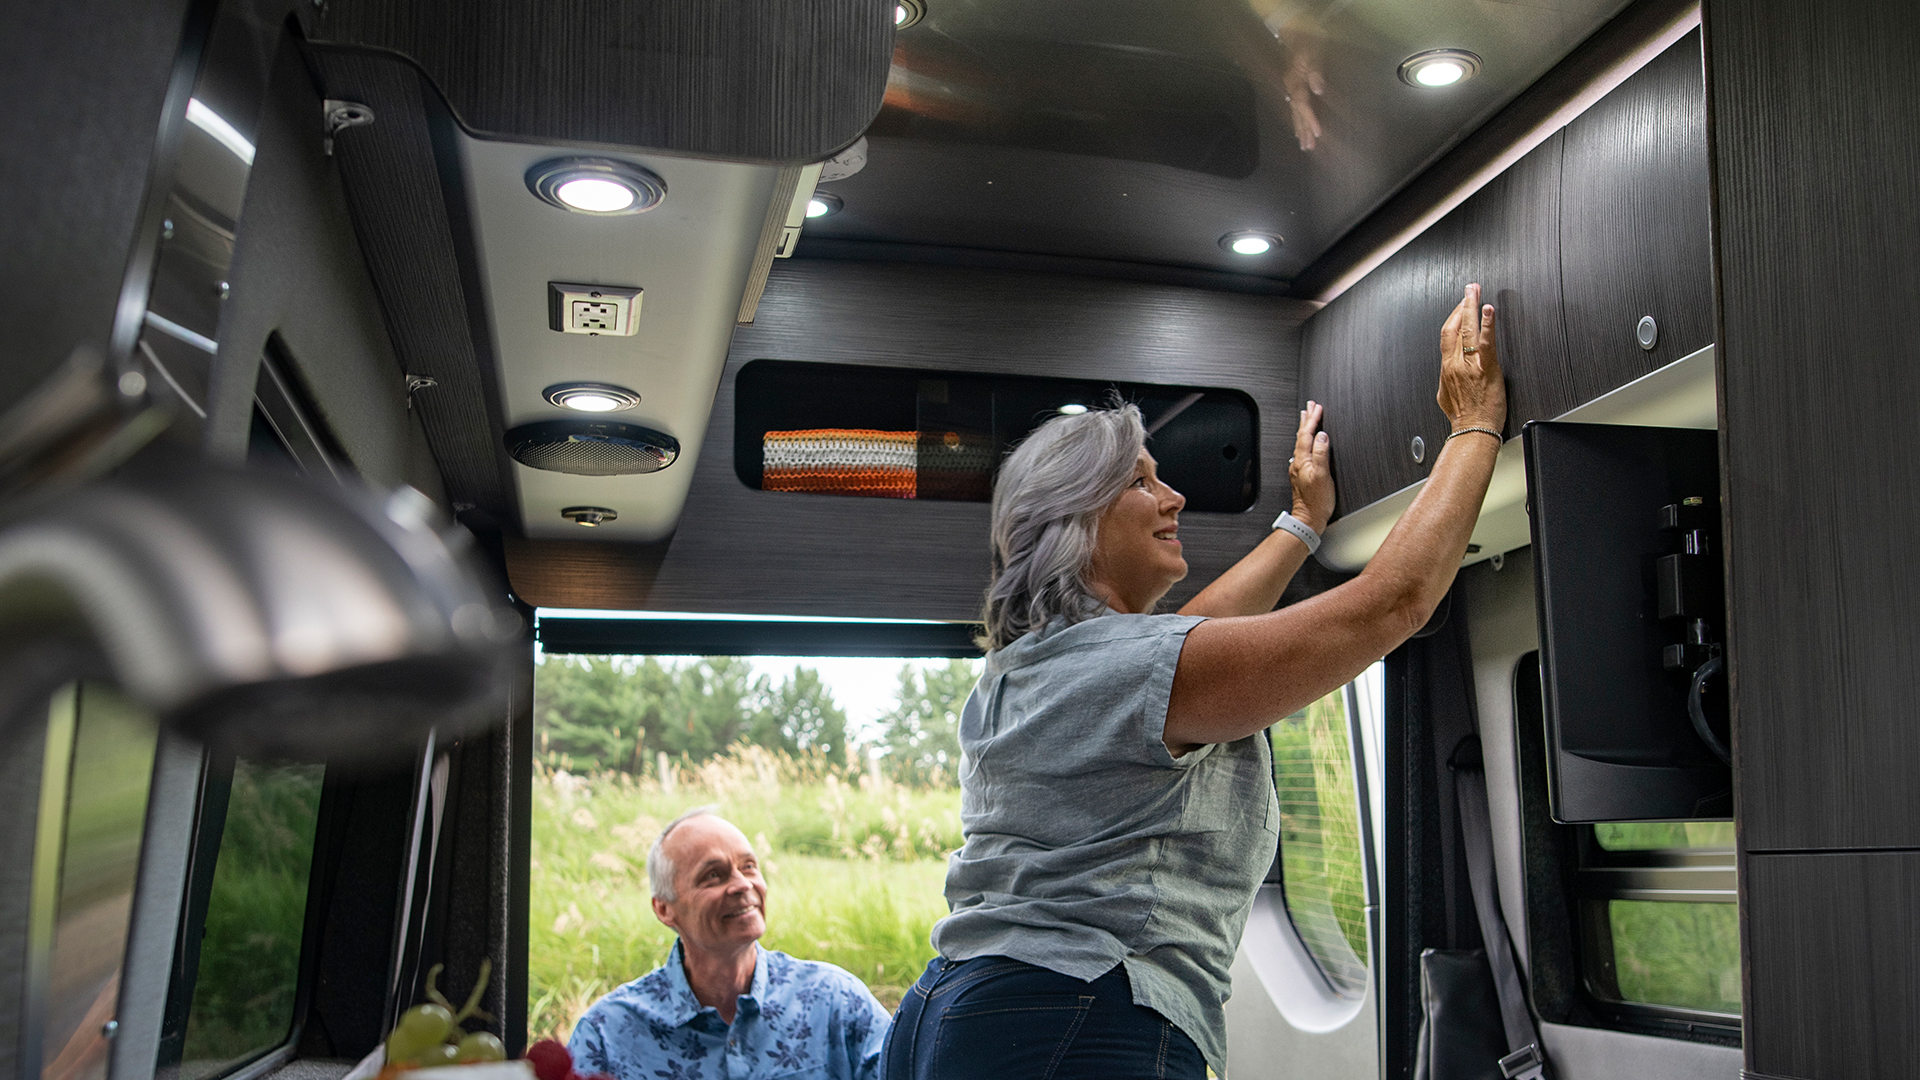 Airstream-Touring-Coach-Overhead-Cabinets-Lifestyle